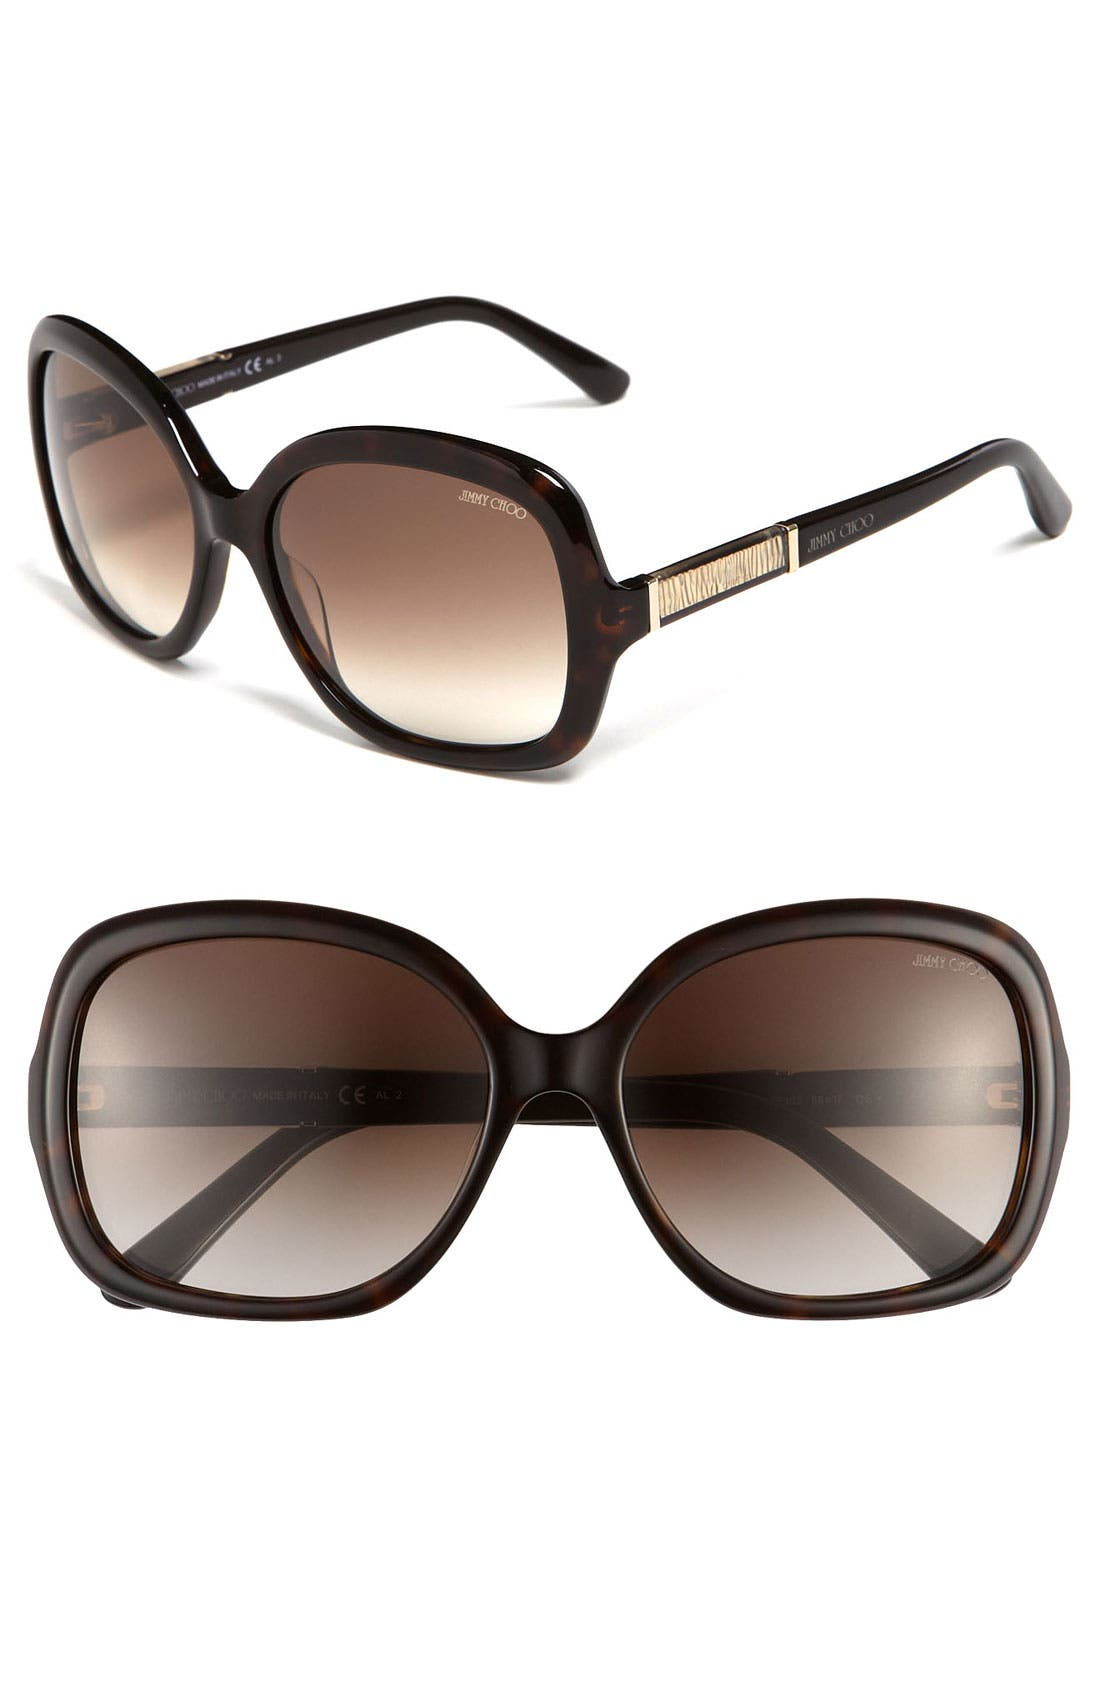 Main Image - Jimmy Choo 'Mita' Oversized Sunglasses